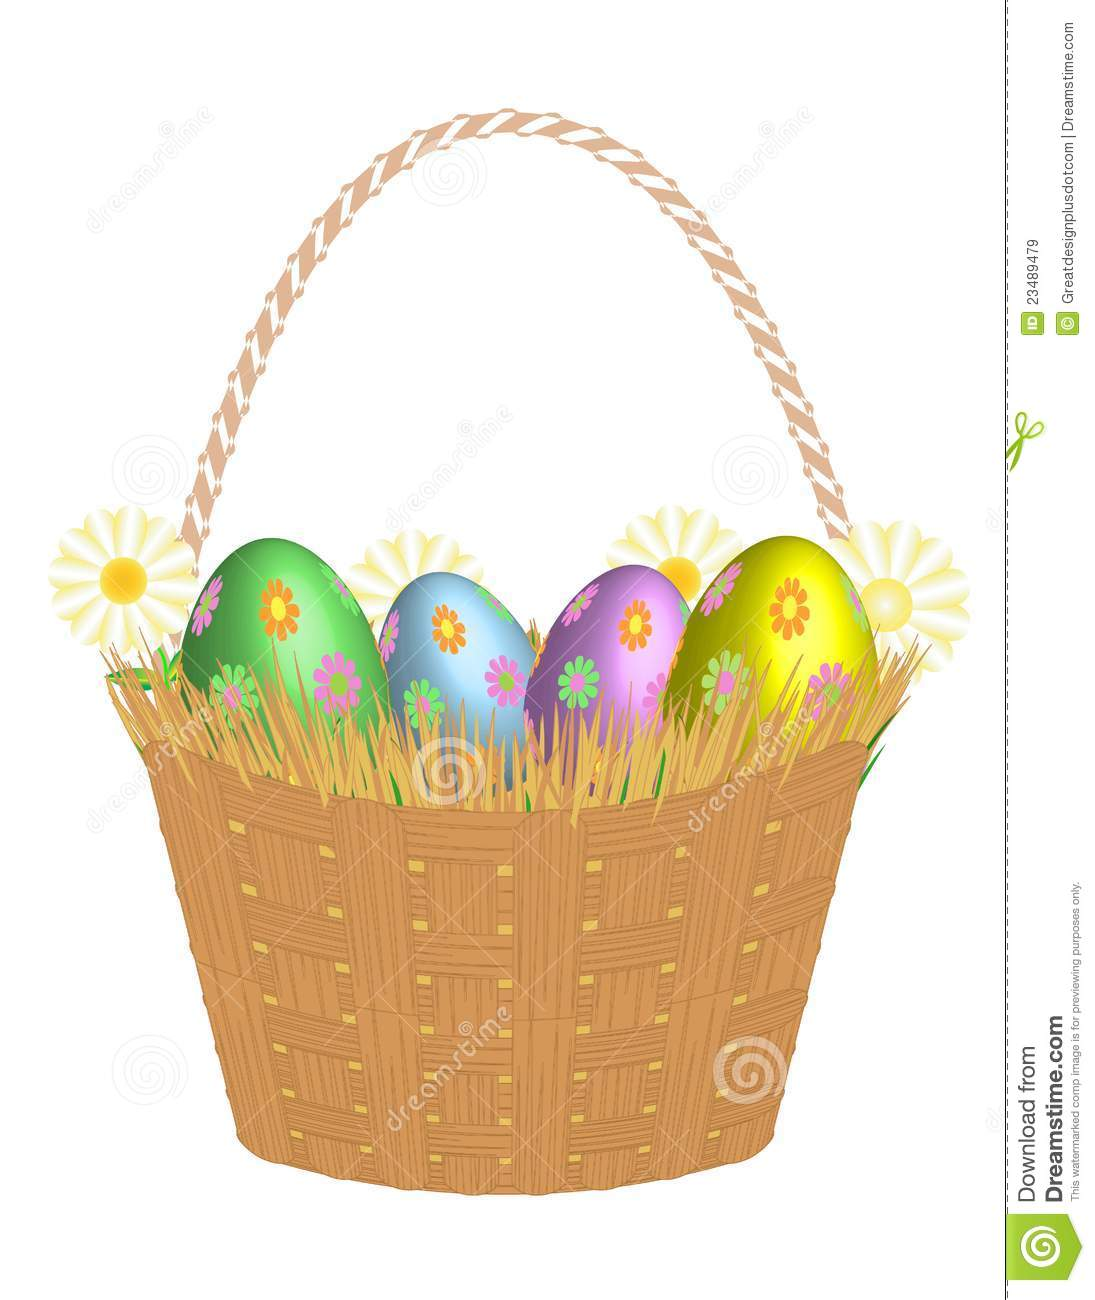 Easter basket straw clipart png free Easter basket straw clipart - ClipartFest png free